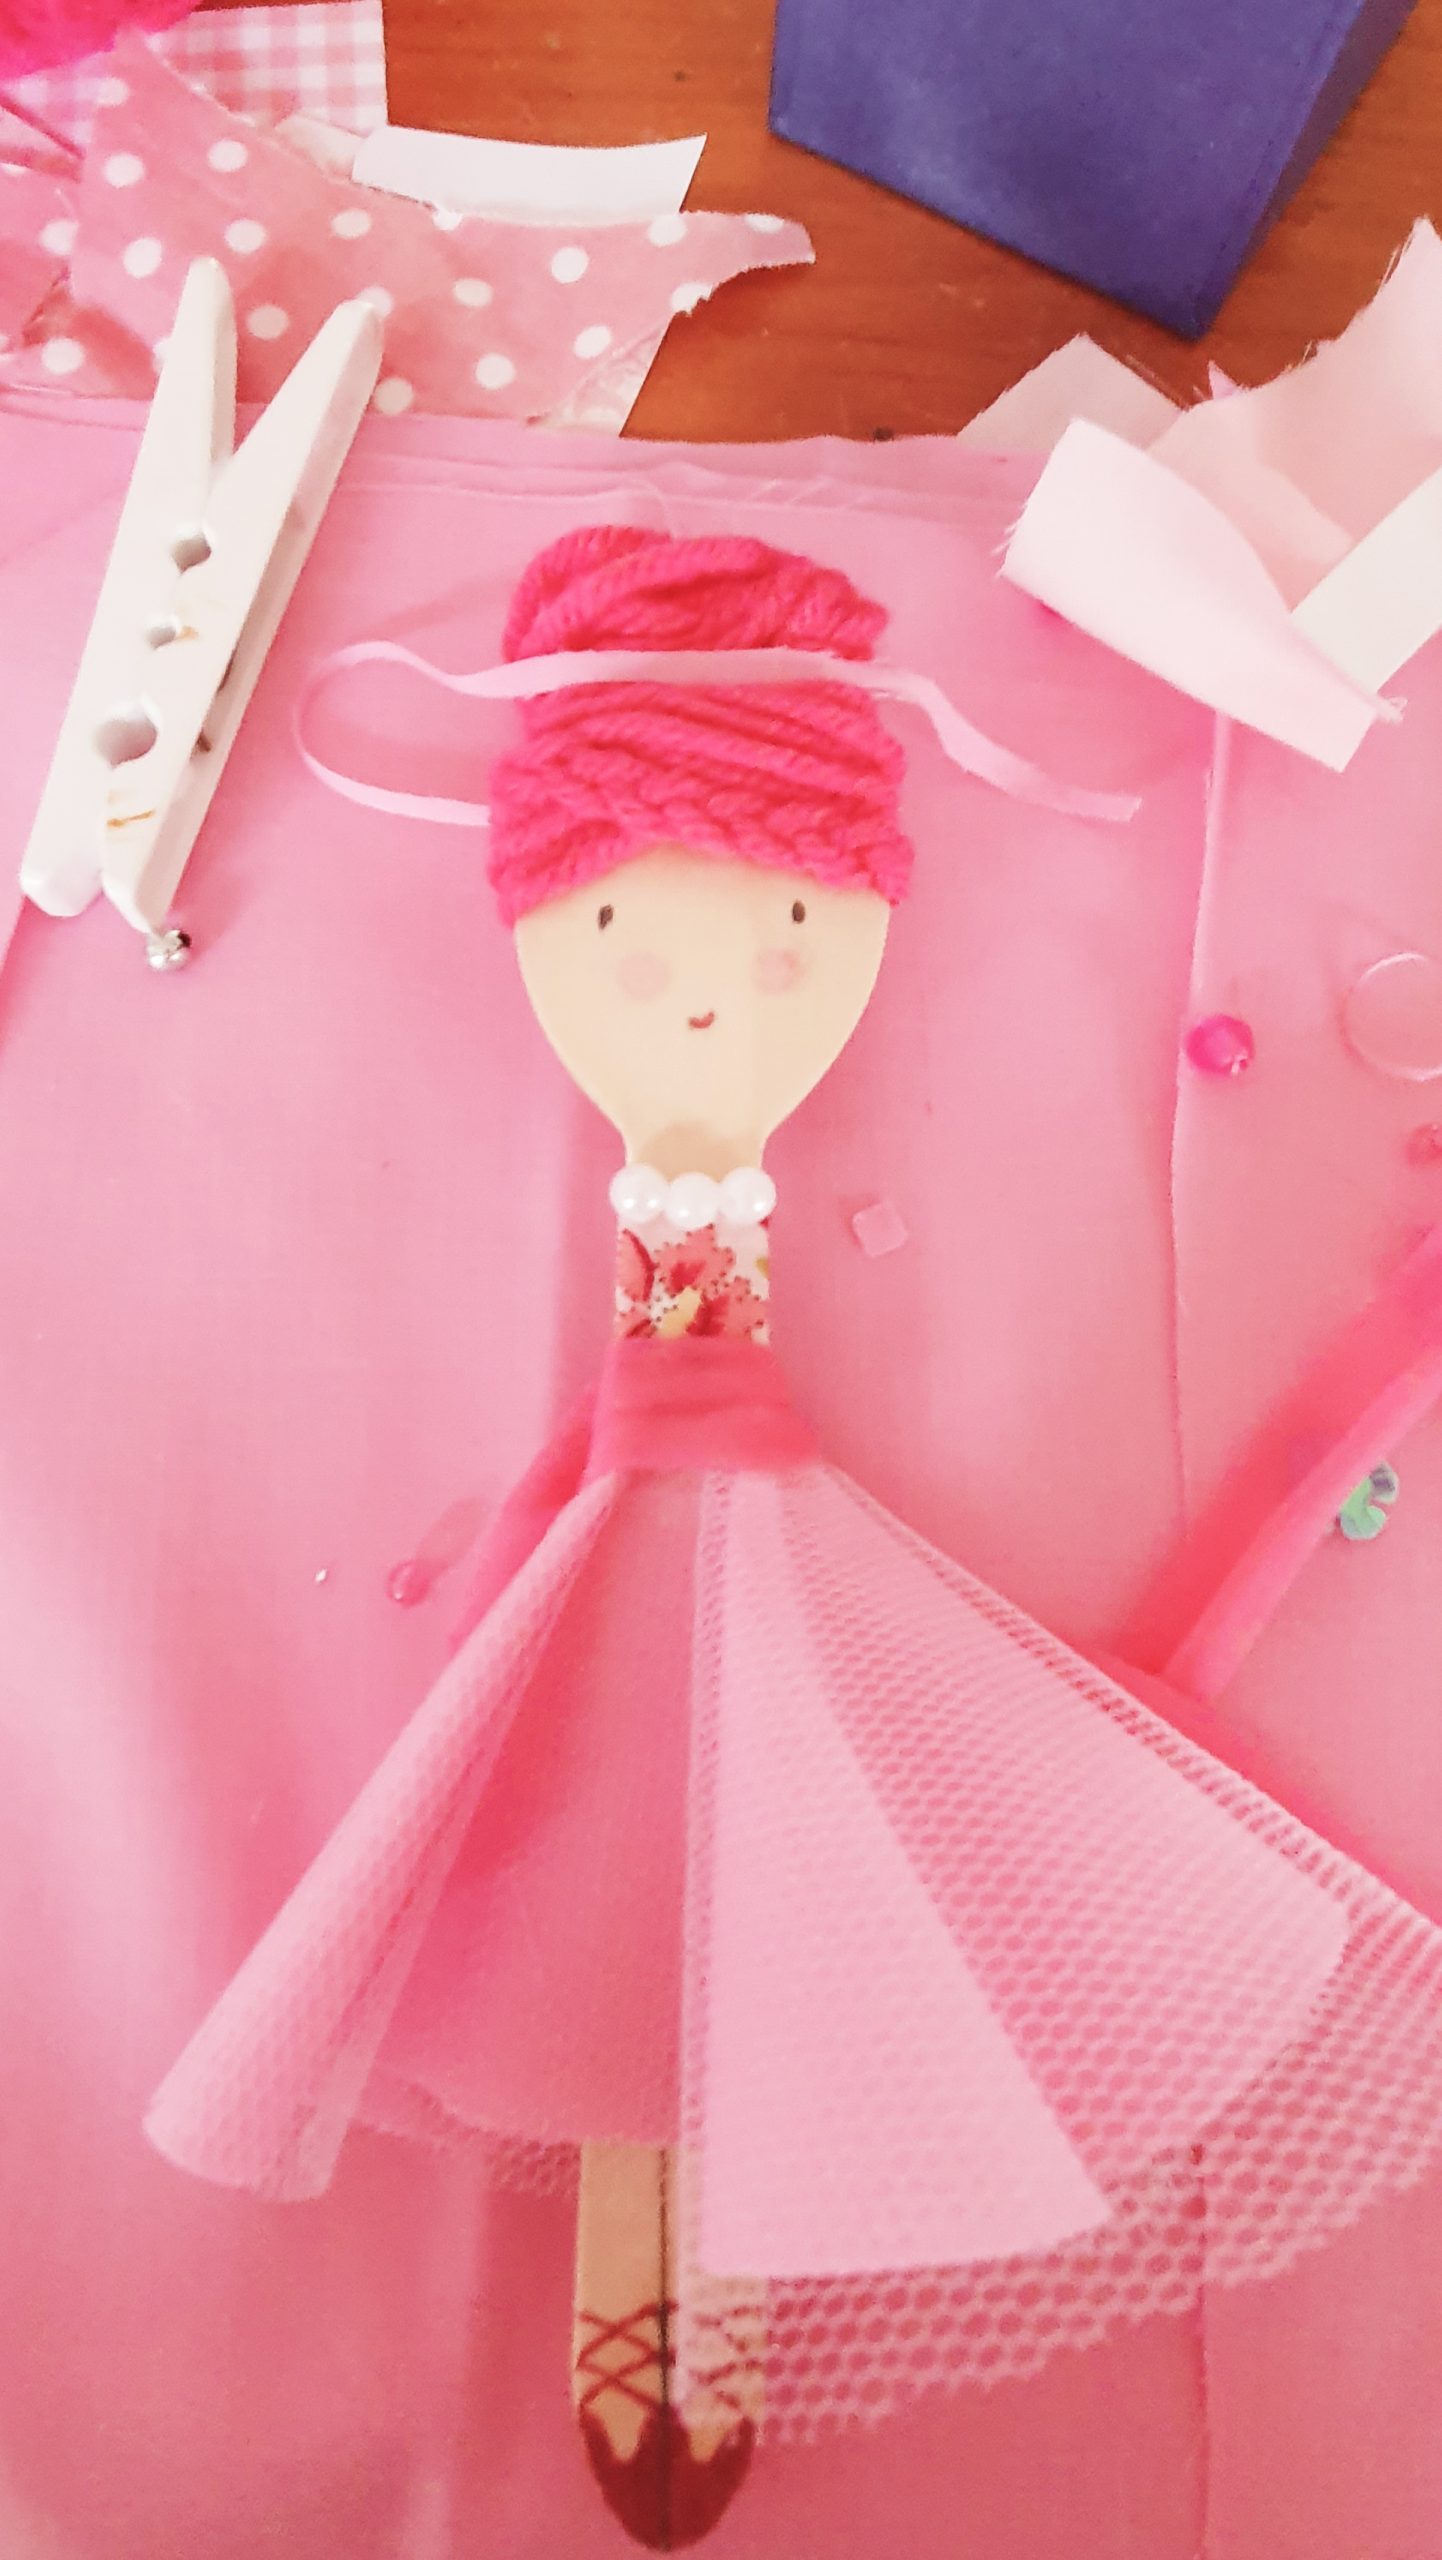 Make Your Own Spoon Doll - Decorate